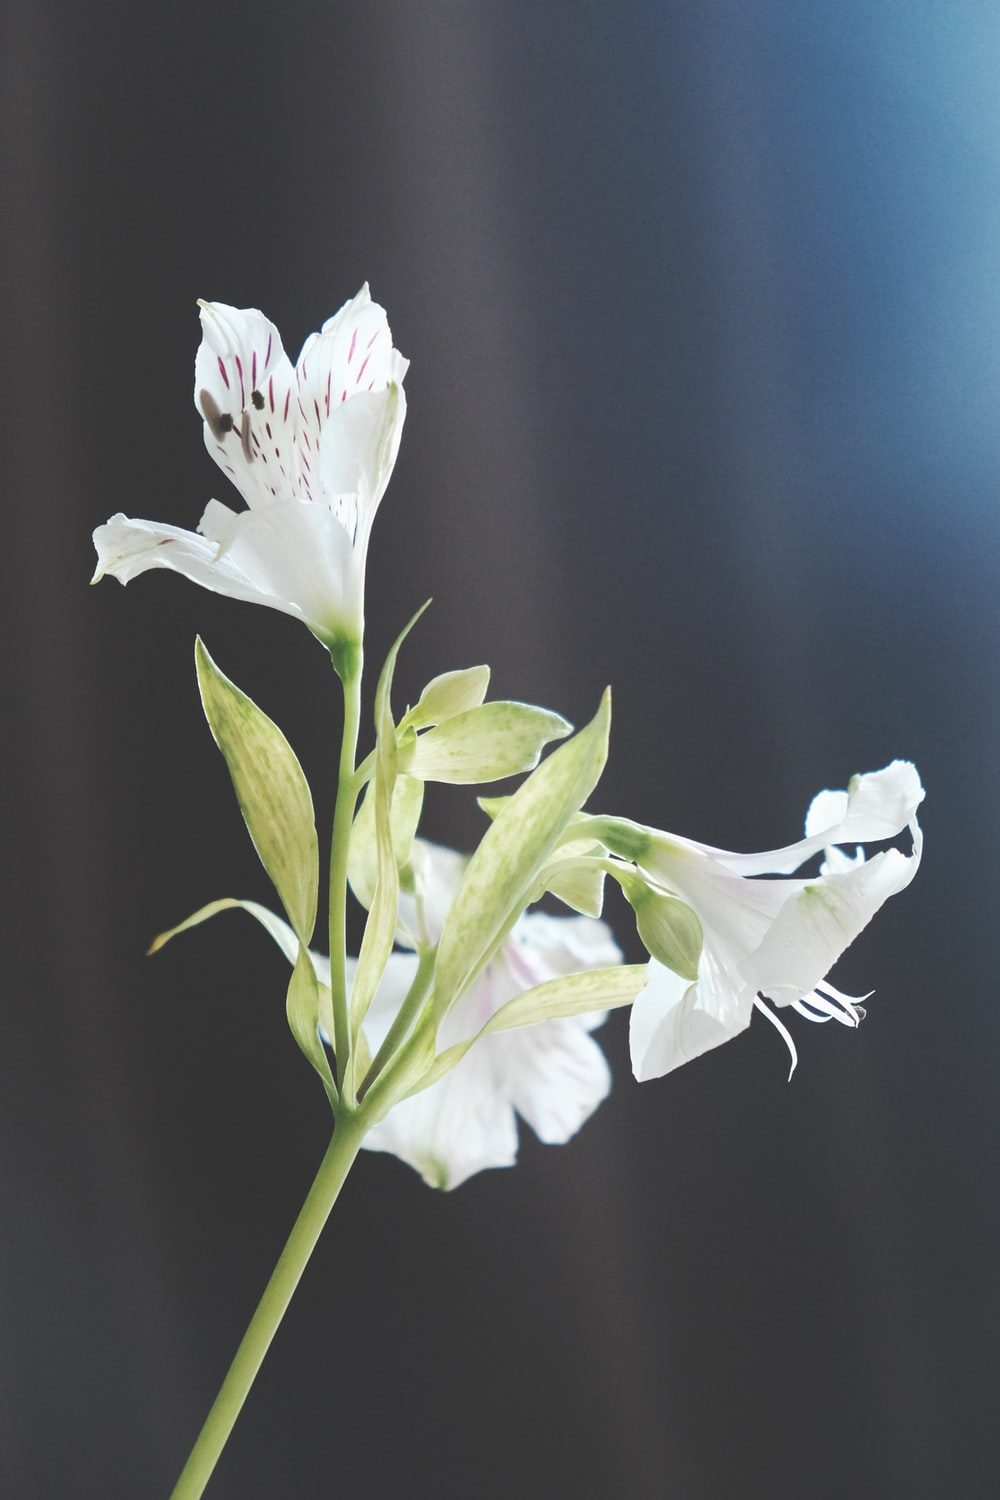 500 white lily pictures download free images on unsplash white flowers in macro shot mightylinksfo